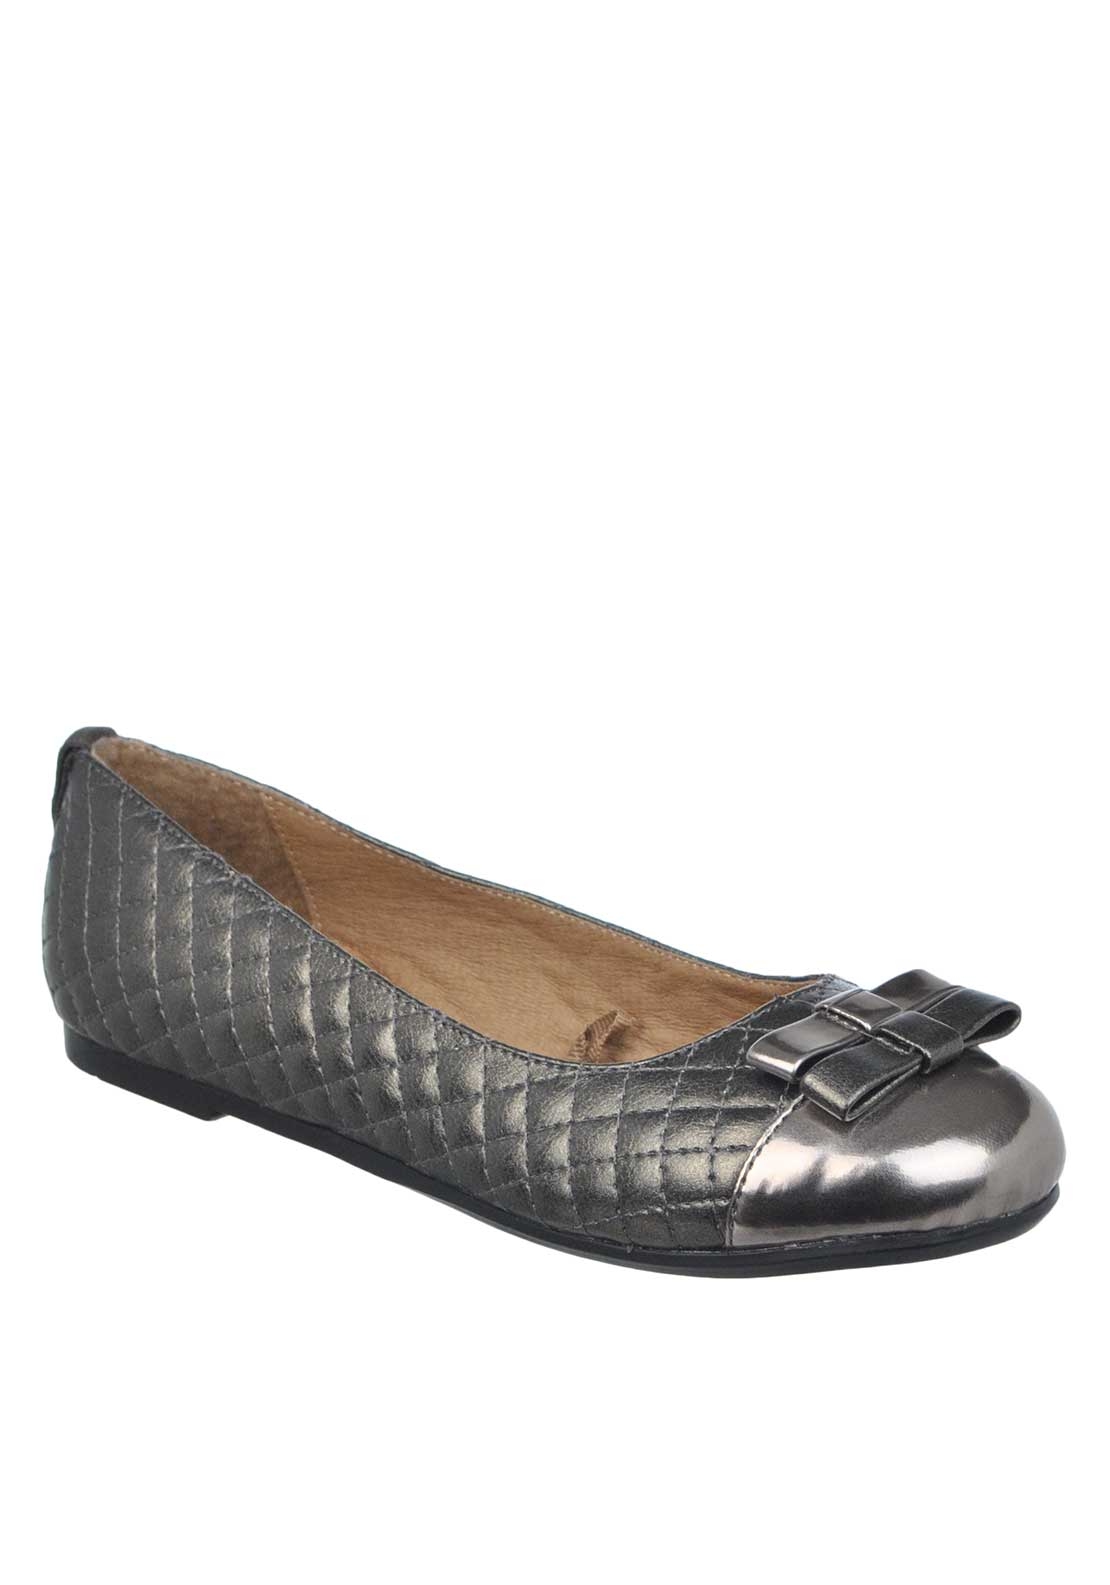 Mayoral Girls Metallic Quilted Bow Pumps, Pewter